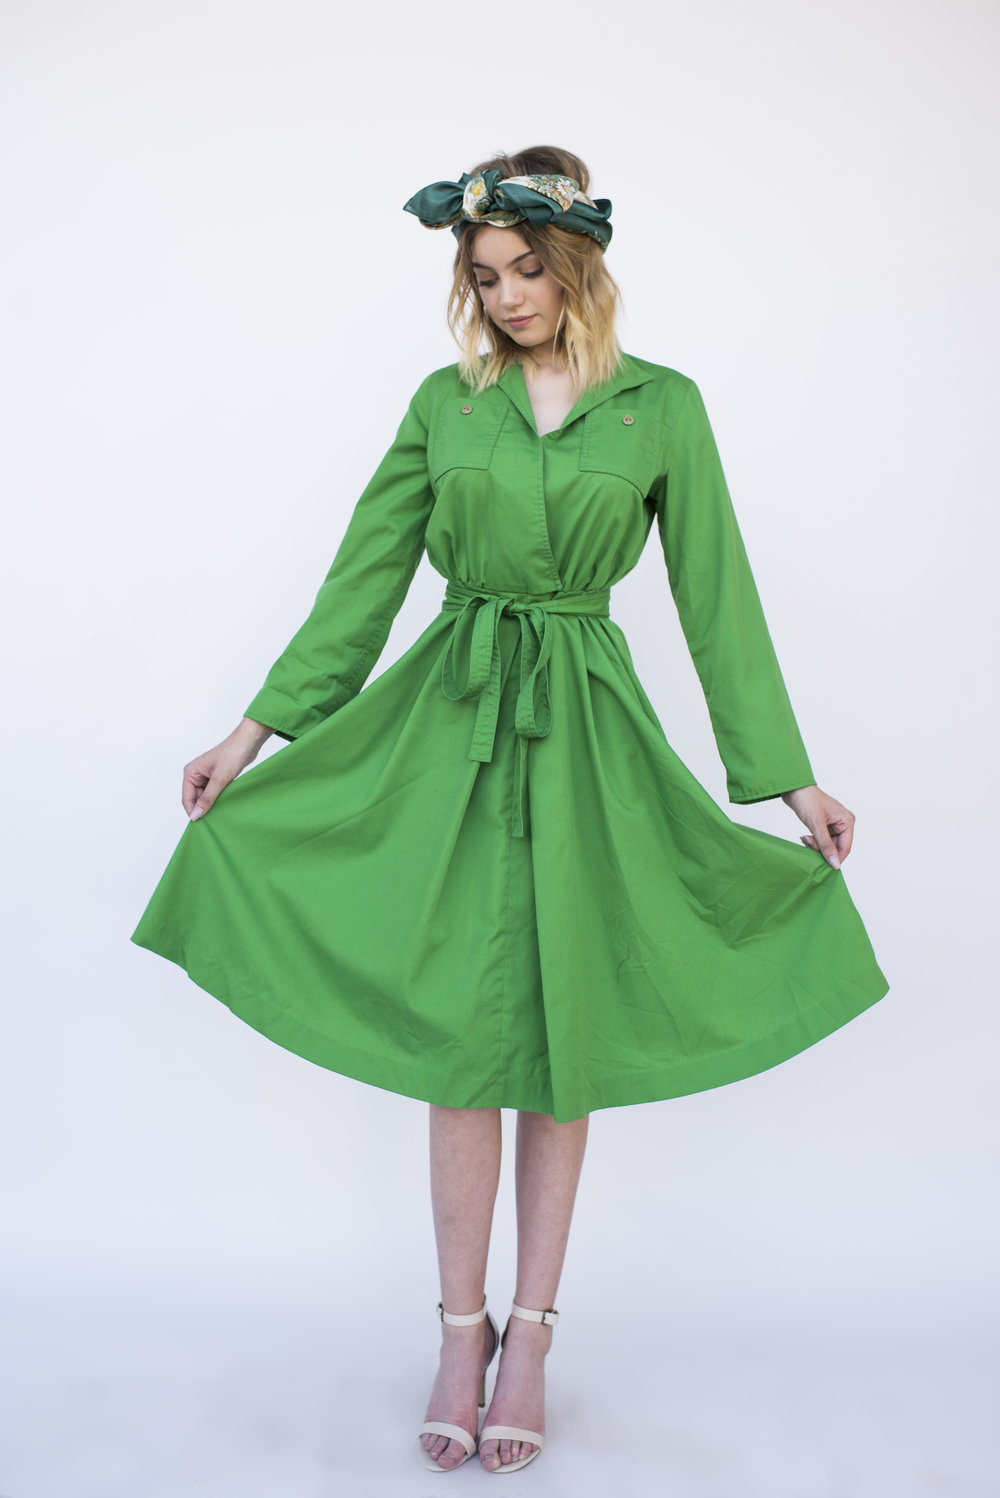 Emme Green Dress.jpg